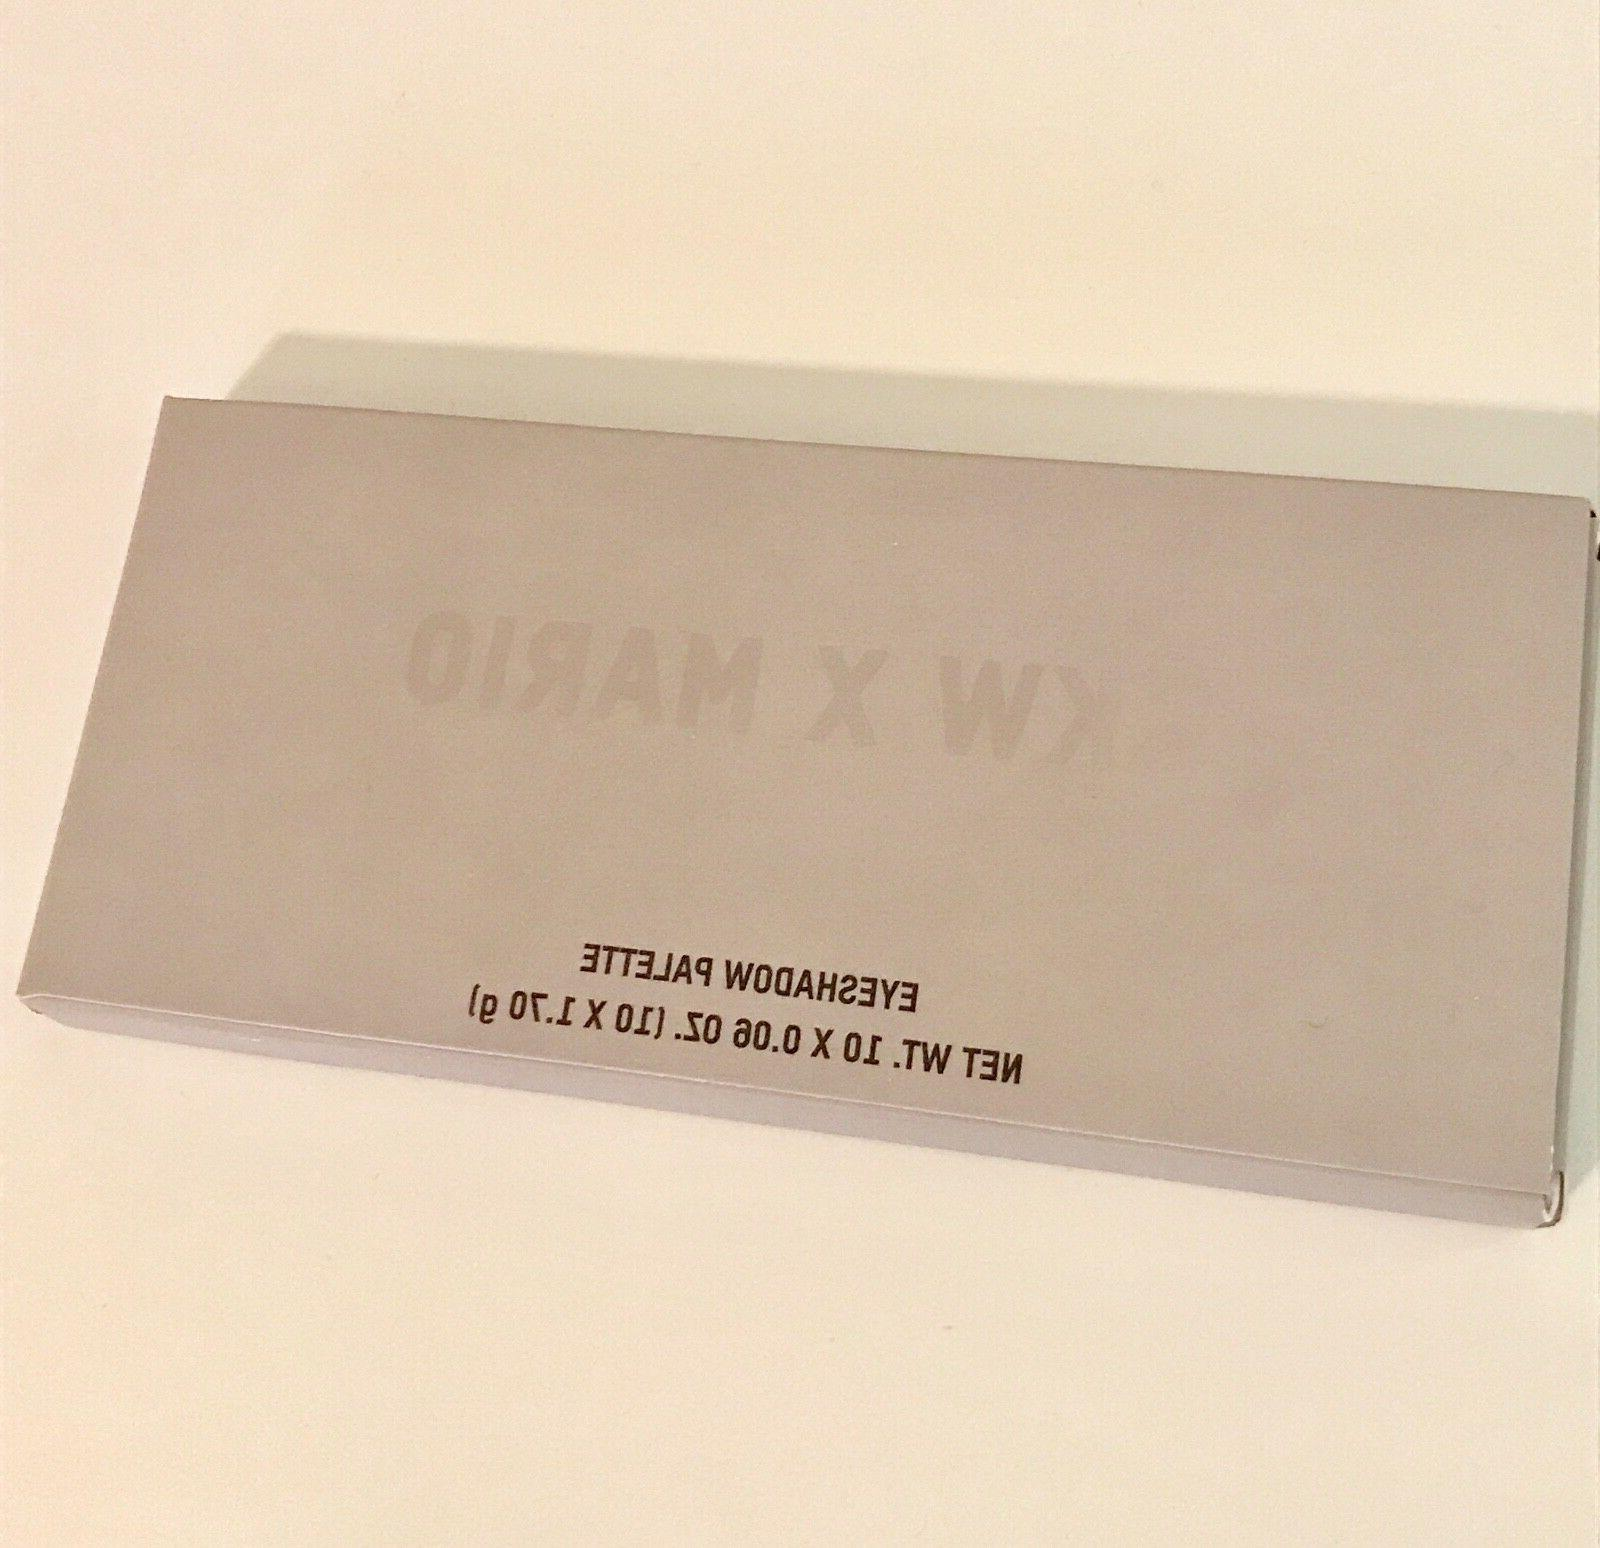 KKW Mario Pan Eyeshadow Palette IN STOCK Limited time - FREE SHIPPING